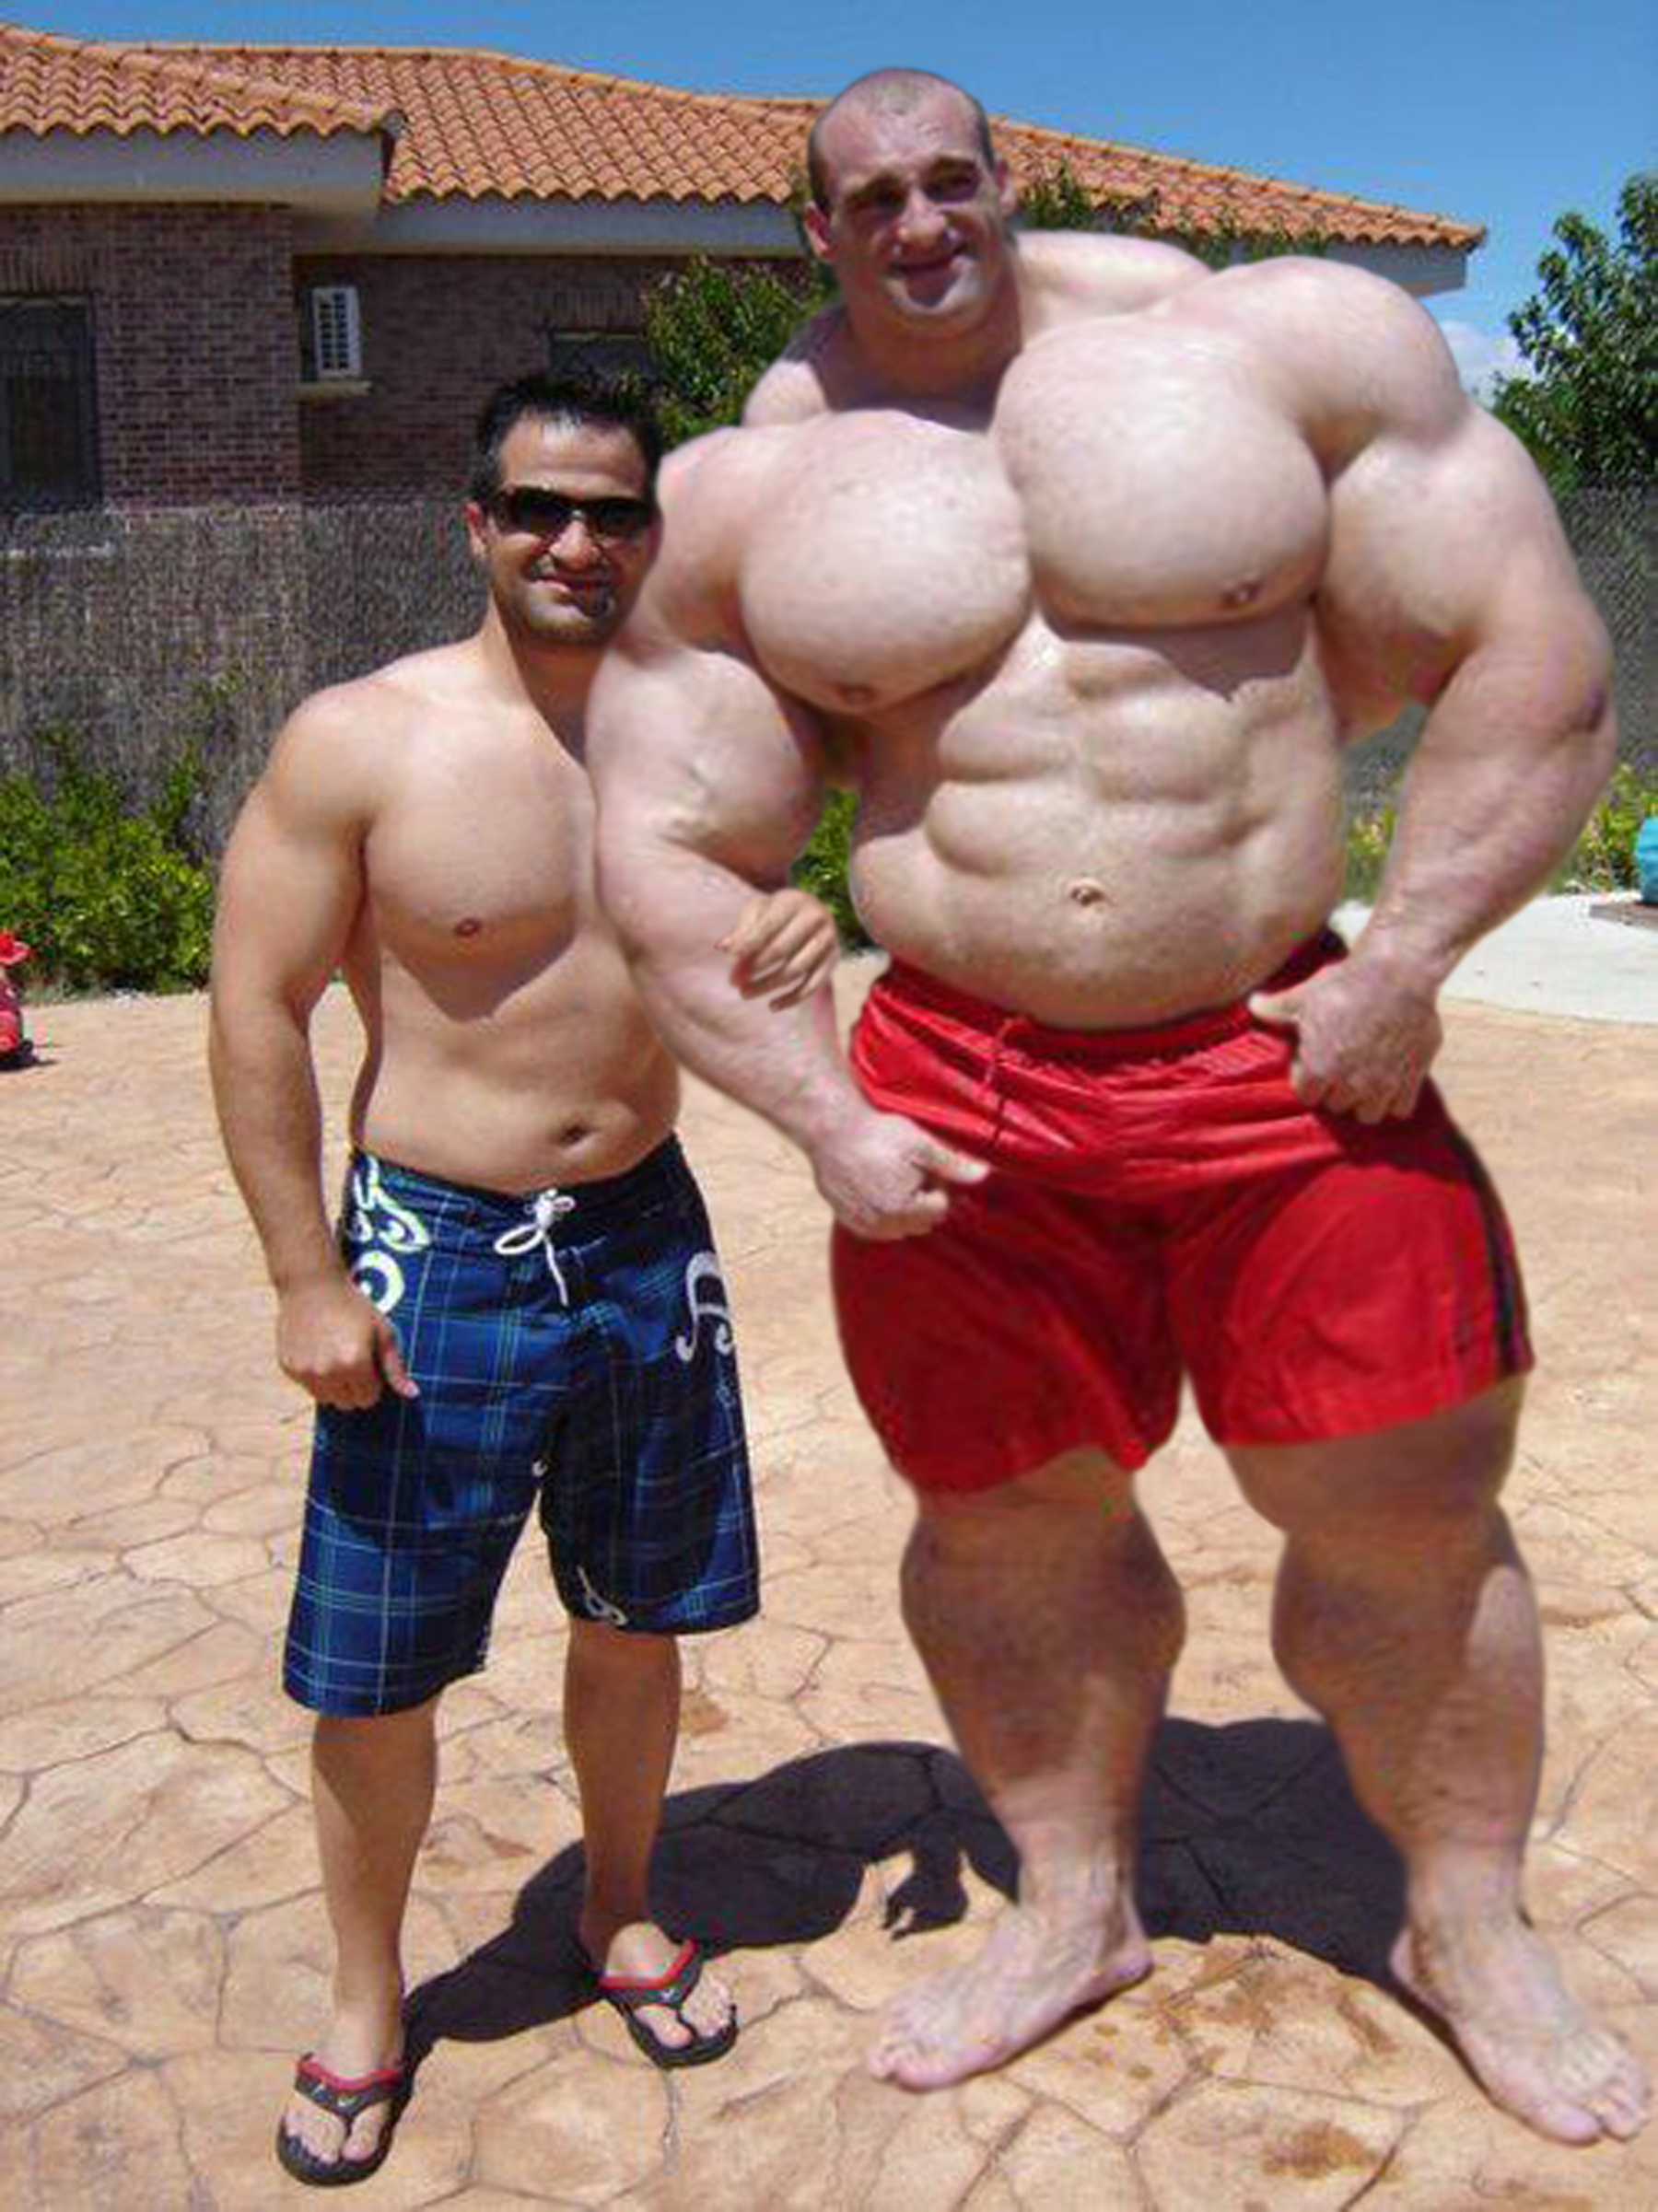 When your friend is a huge bodybuilder by Setpoirot on